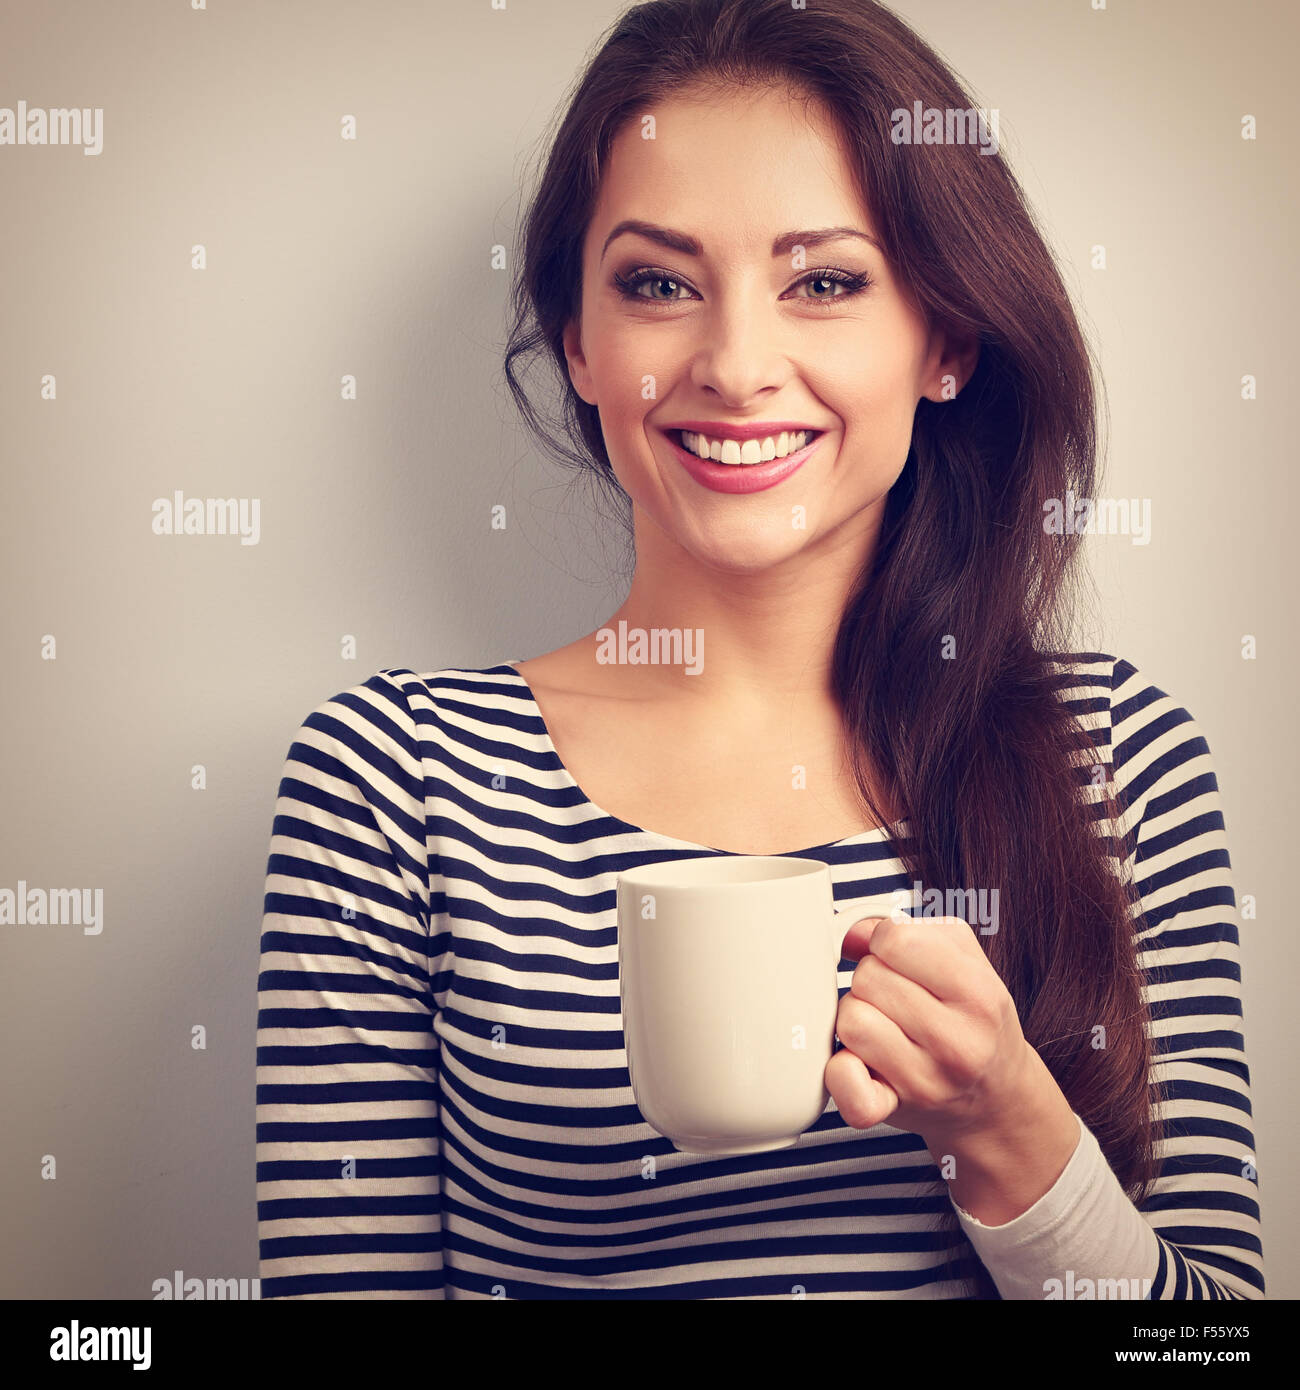 Happy young woman smiling casual dentelée avec une tasse de thé. Vintage closeup portrait Banque D'Images